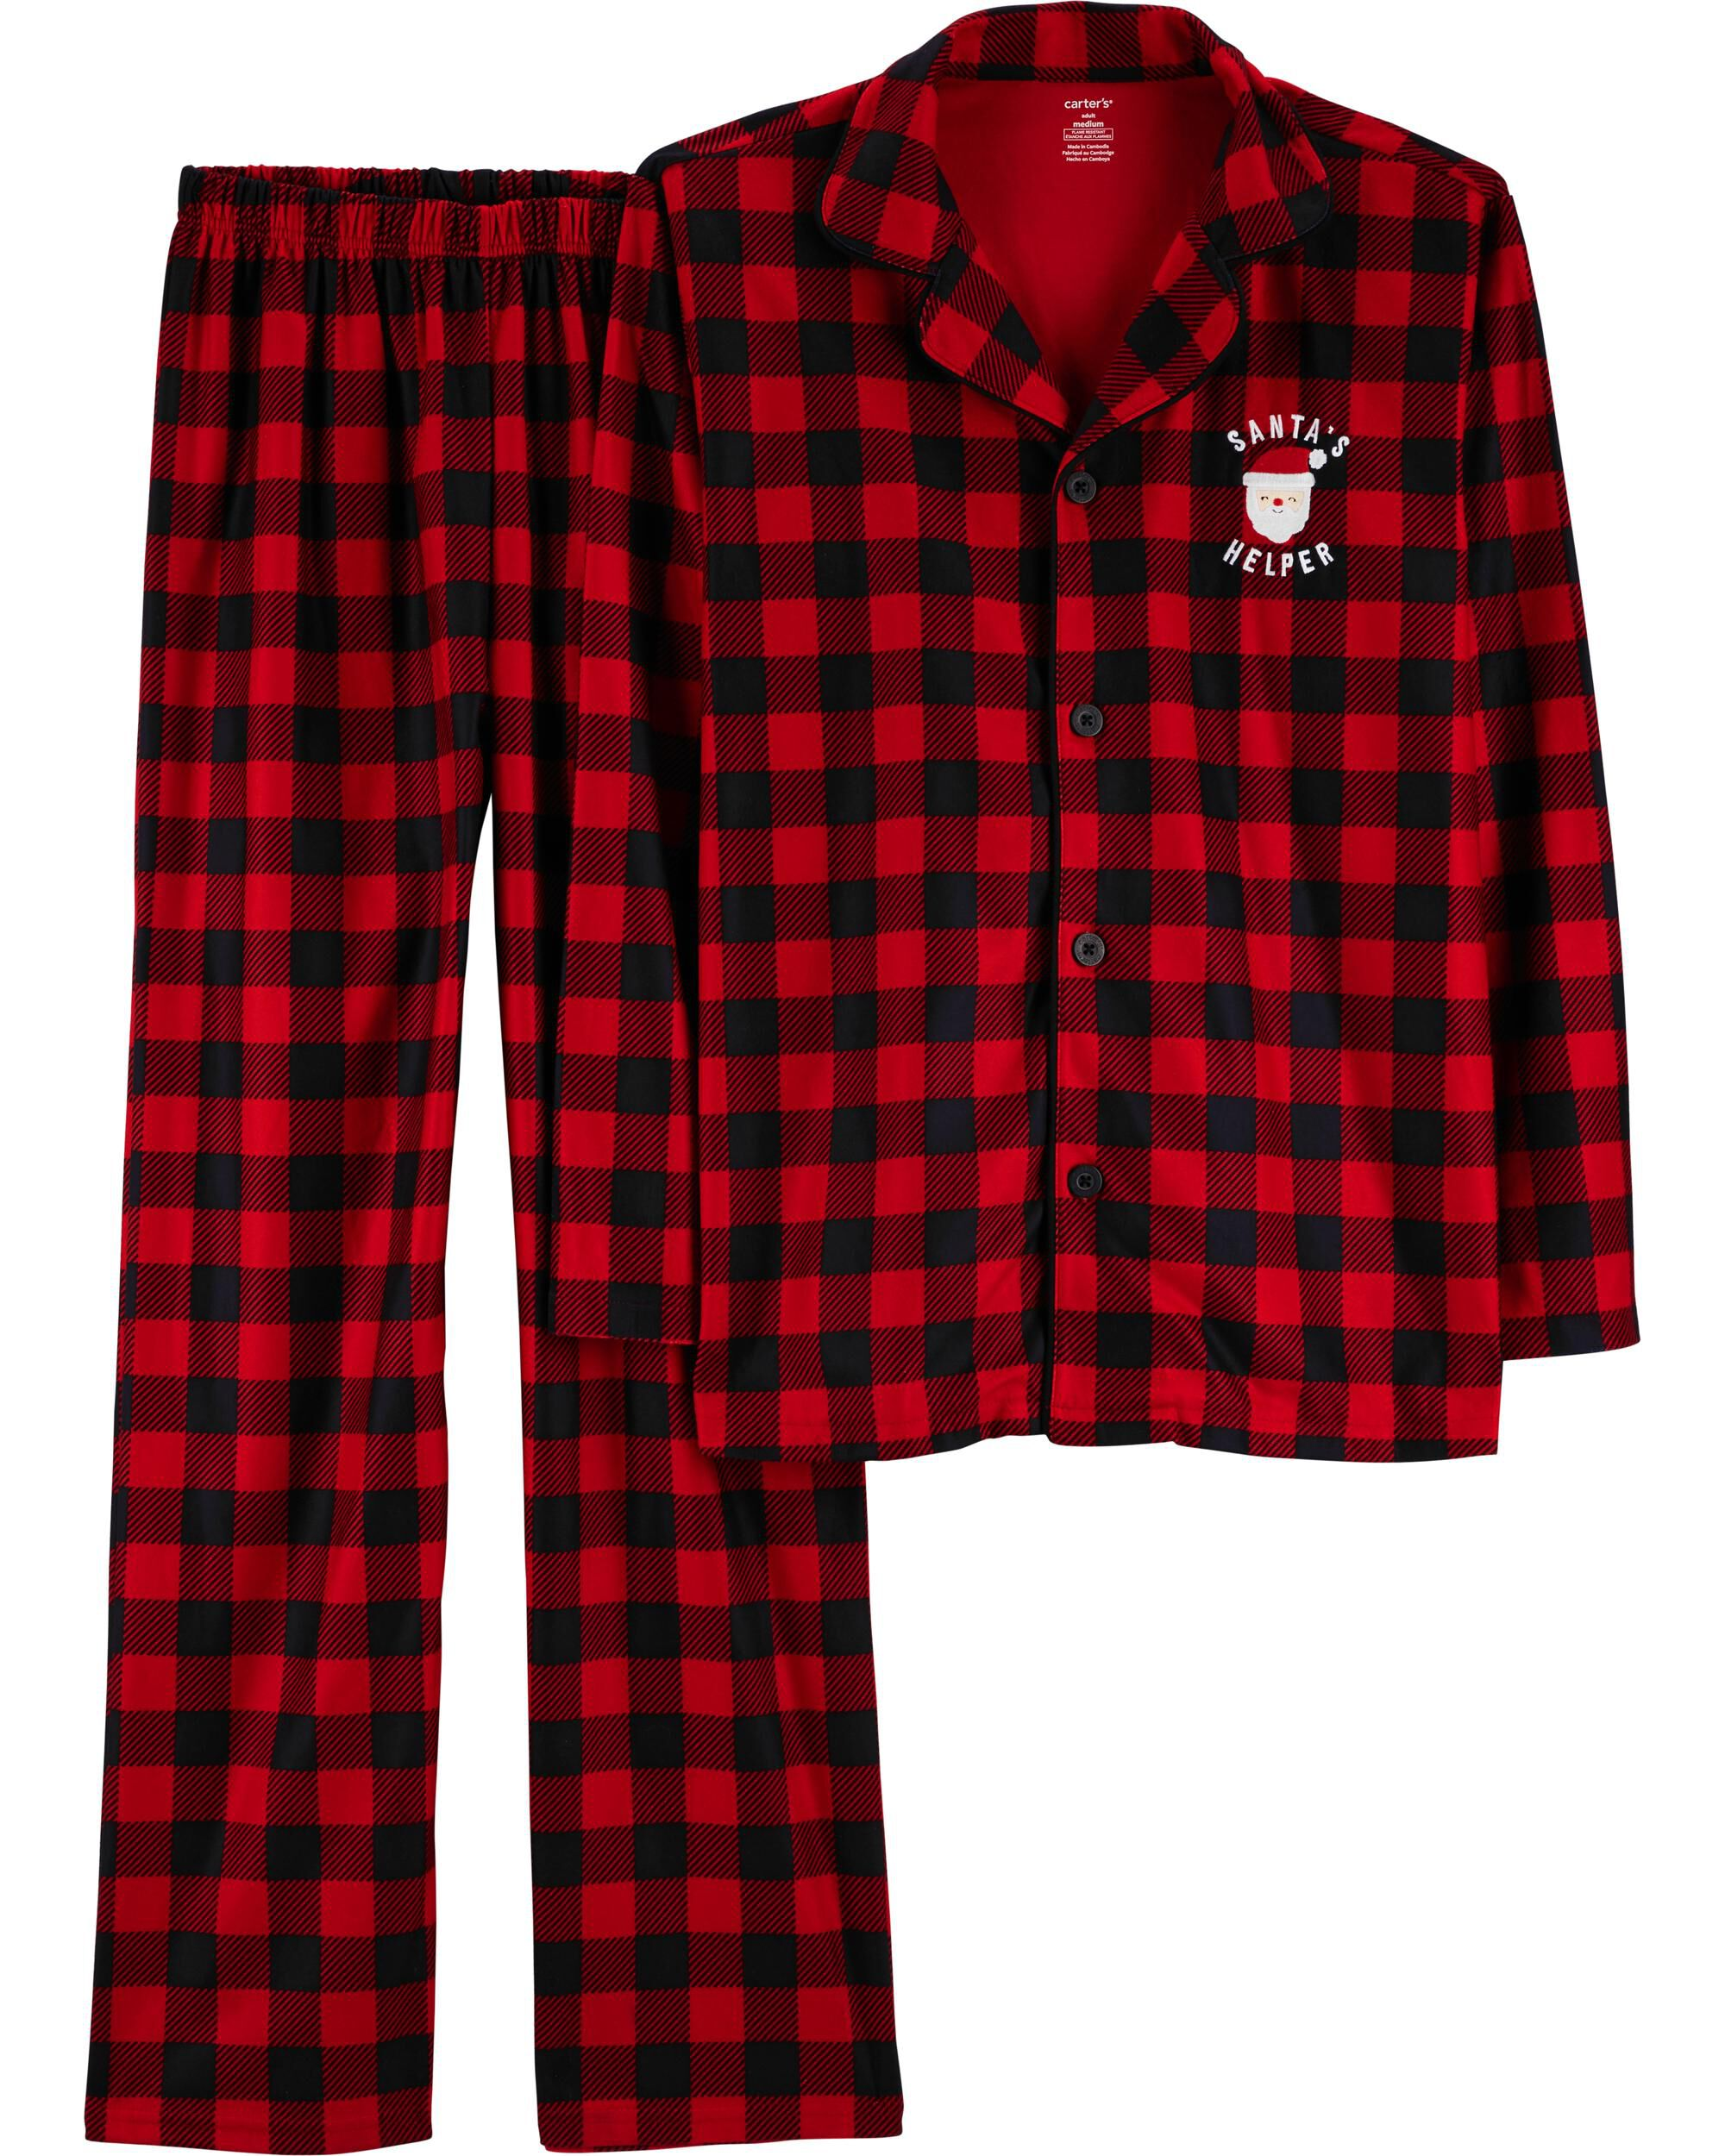 Santa Red and White Gingham Kids Christmas Boys Pajamas Lightweight Fabric